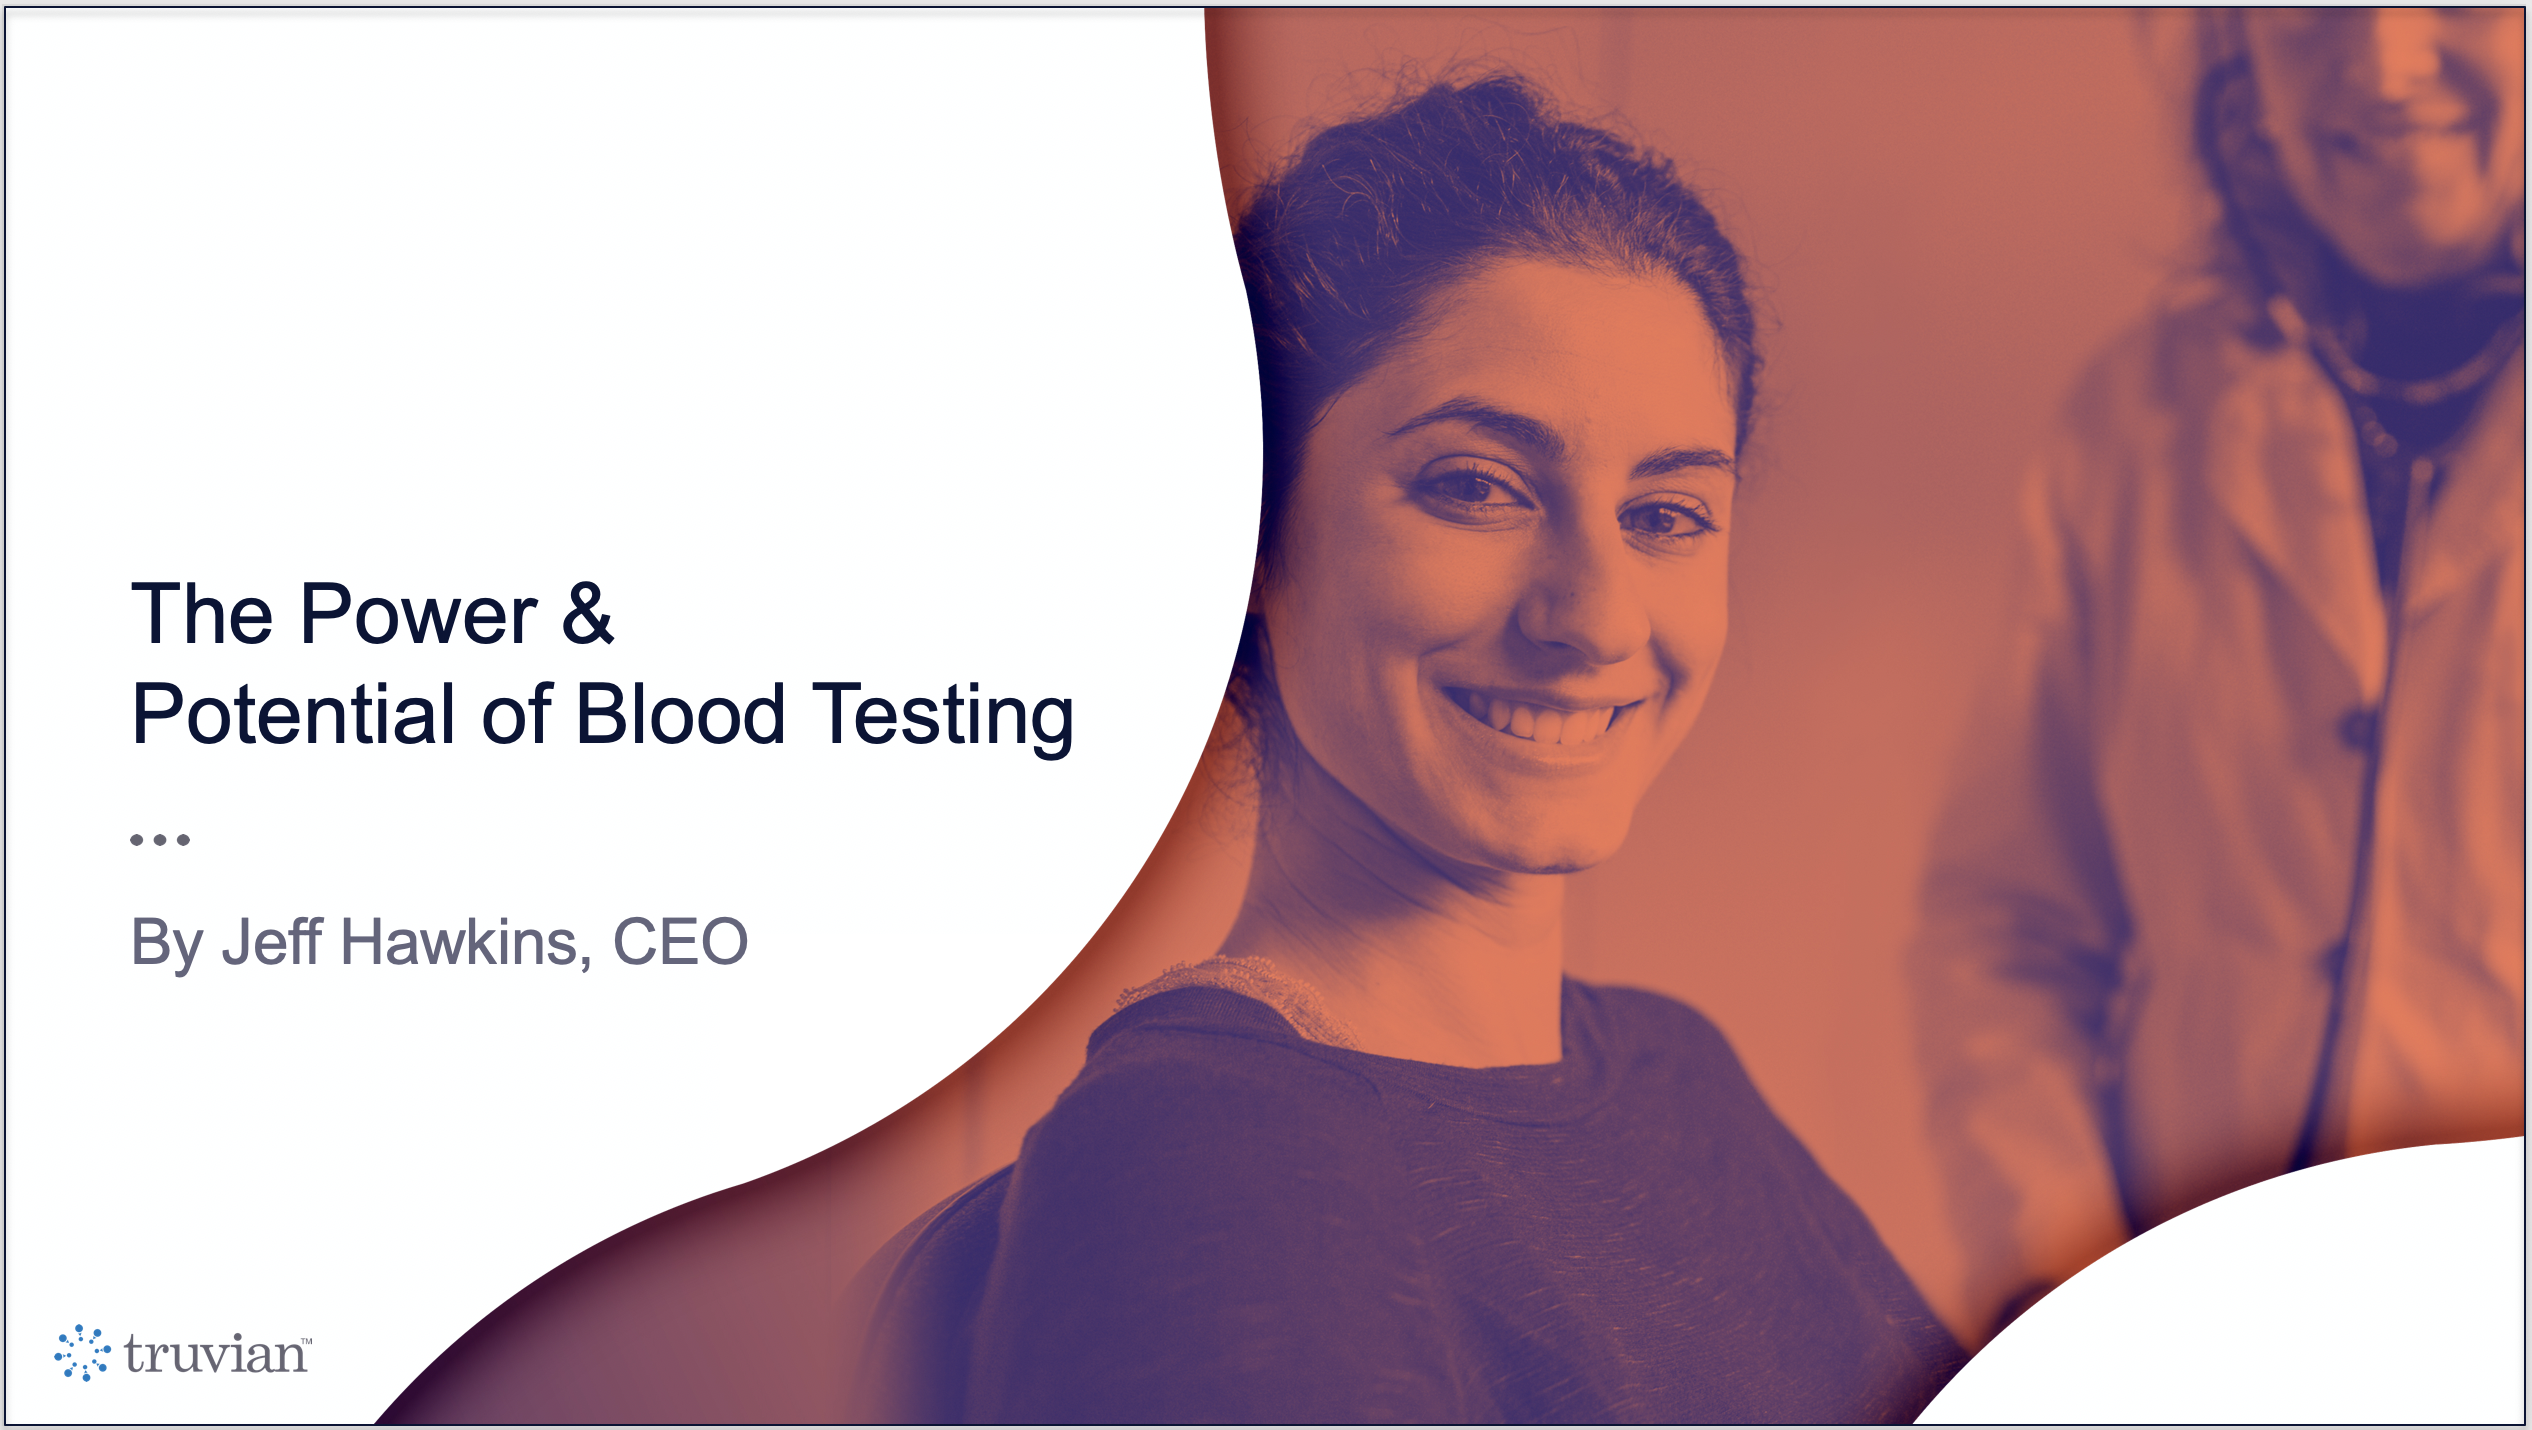 why the single drop of blood test didn't work.